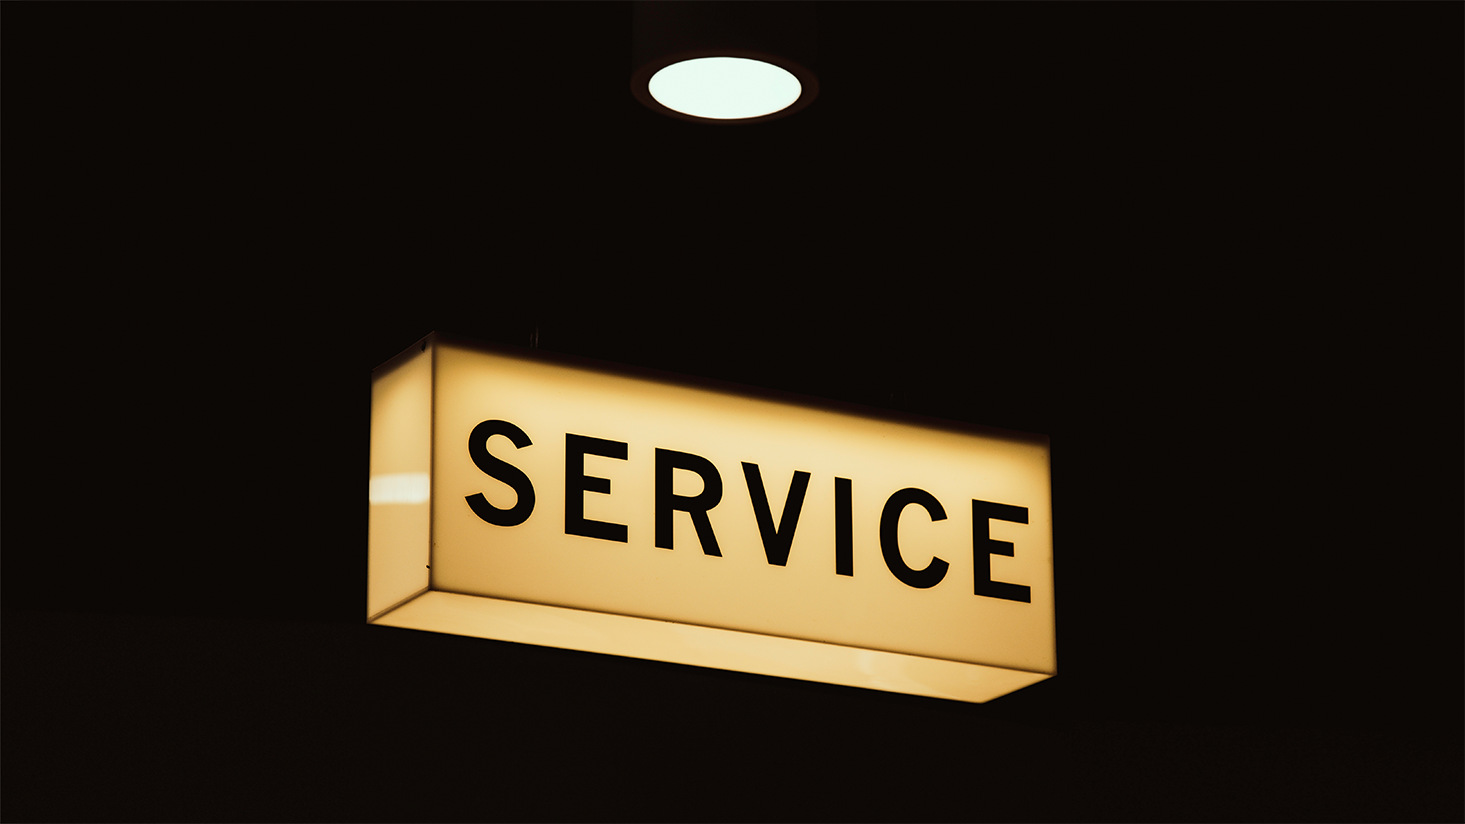 Lighting-as-a-service-market-is-expected-to-grow-46.3.png